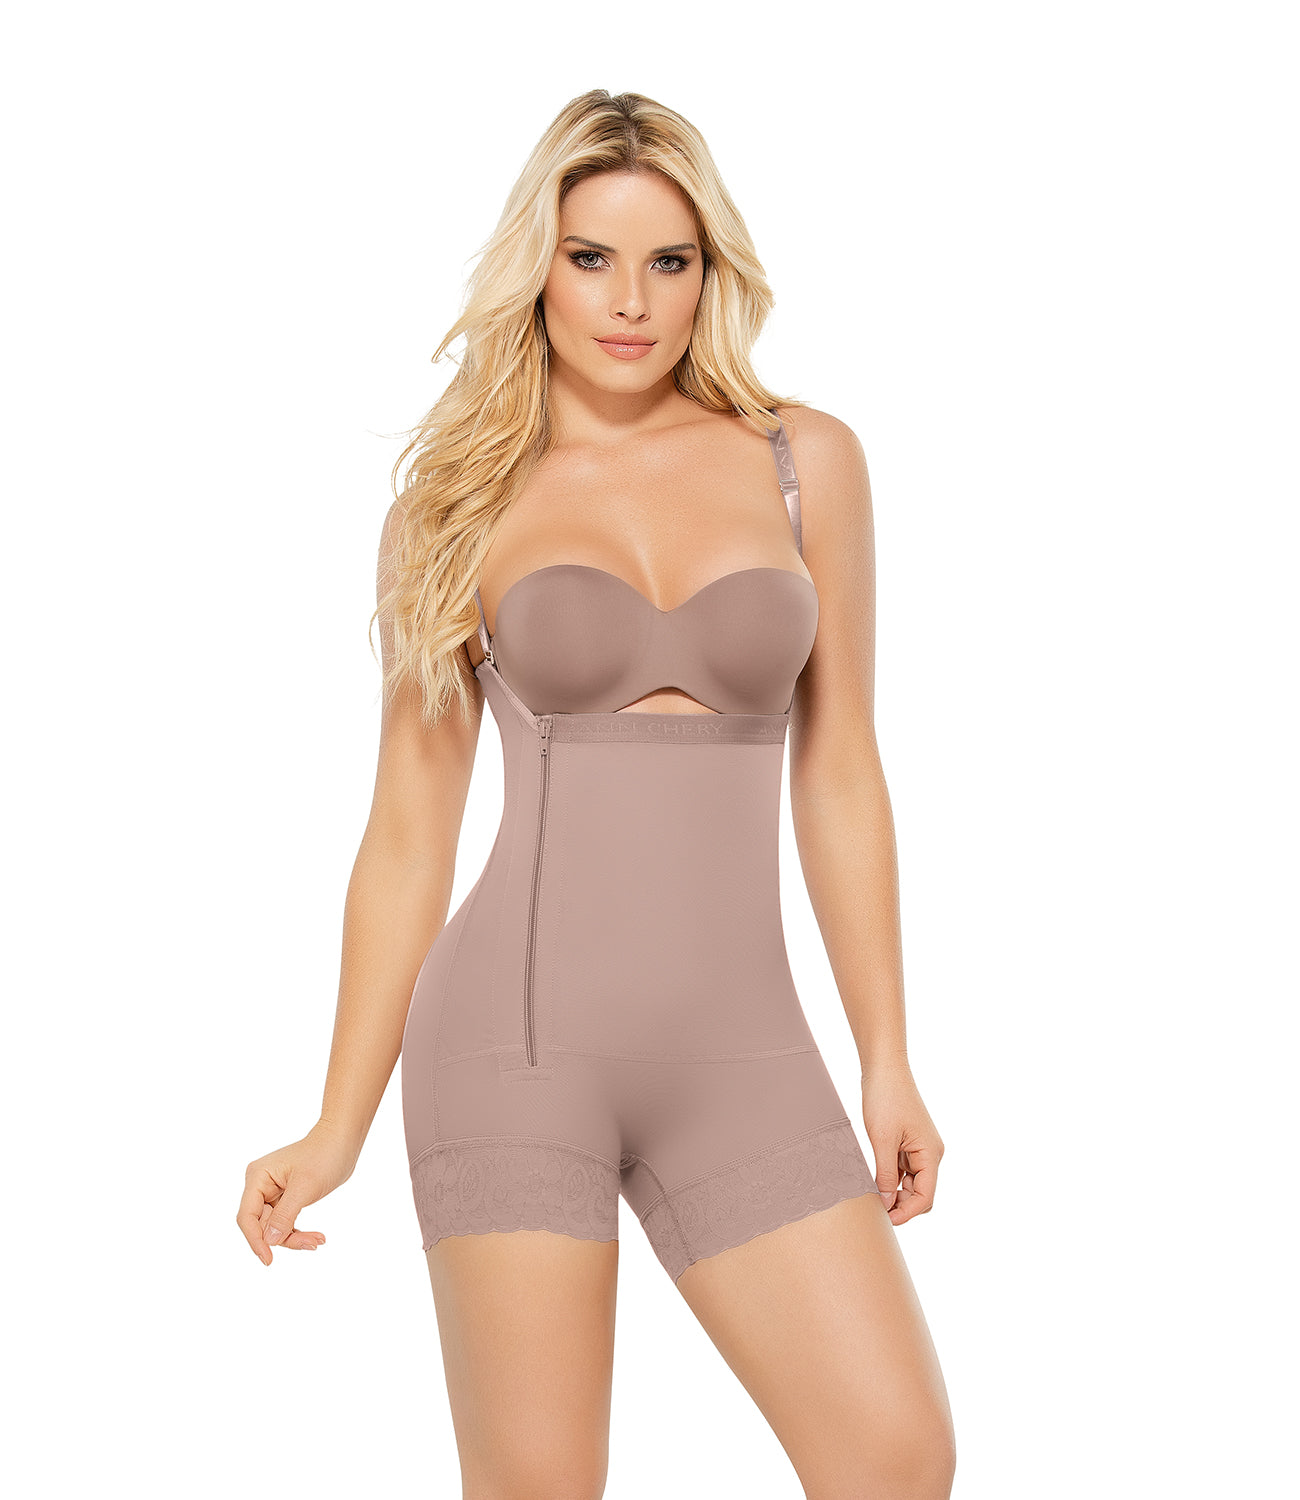 Ann Chery 5146 Mara Fajas Reductoras Postpartum Girdle for Women